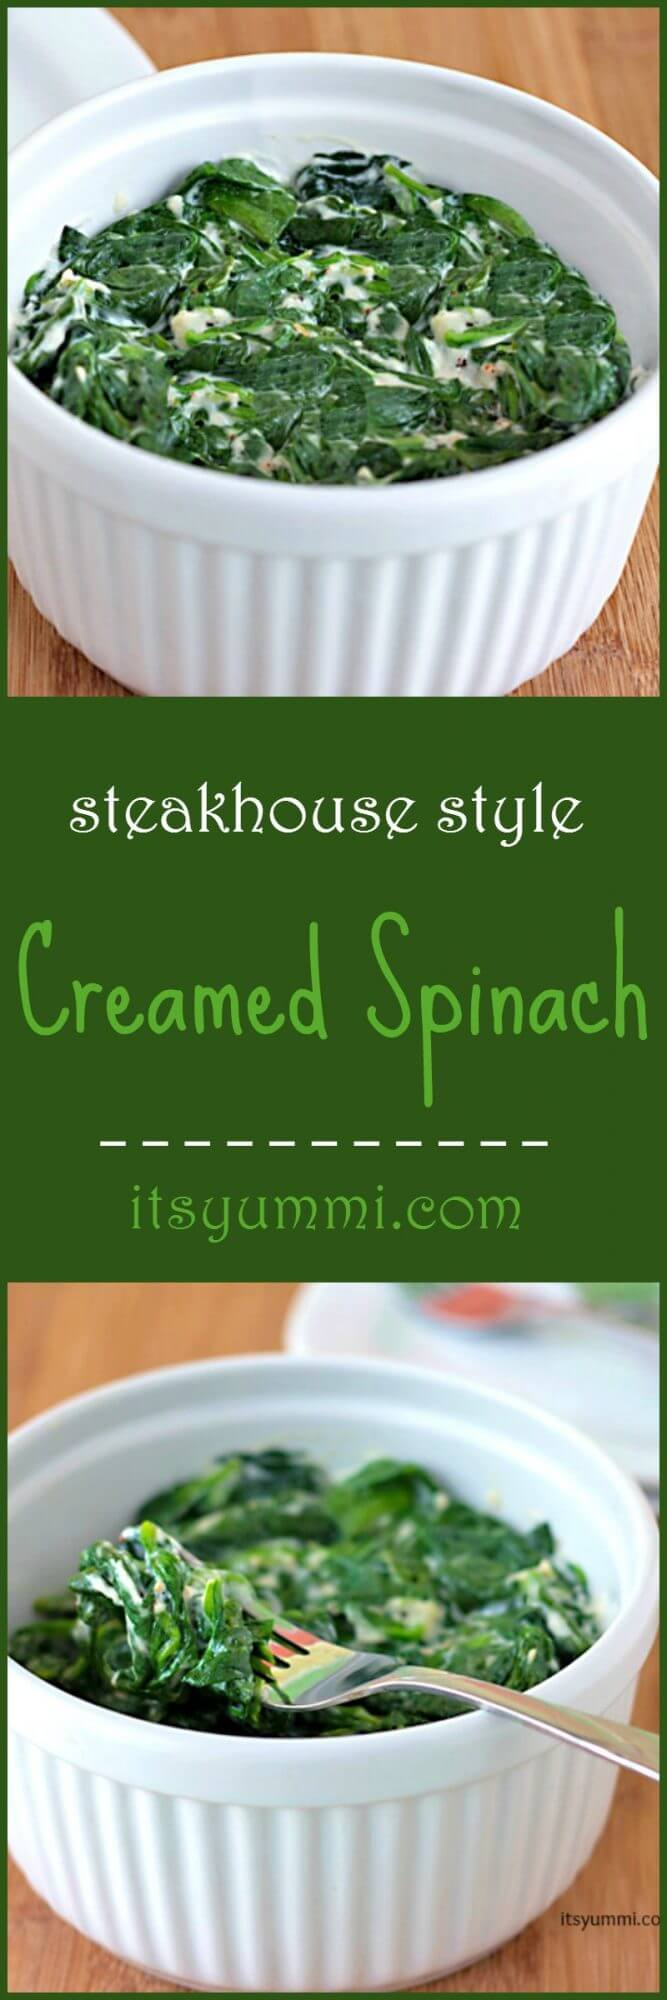 Steakhouse Style Creamed Spinach Recipe - Just like they serve at the fancy steakhouses. AND it's low carb! Get the recipe from @itsyummi